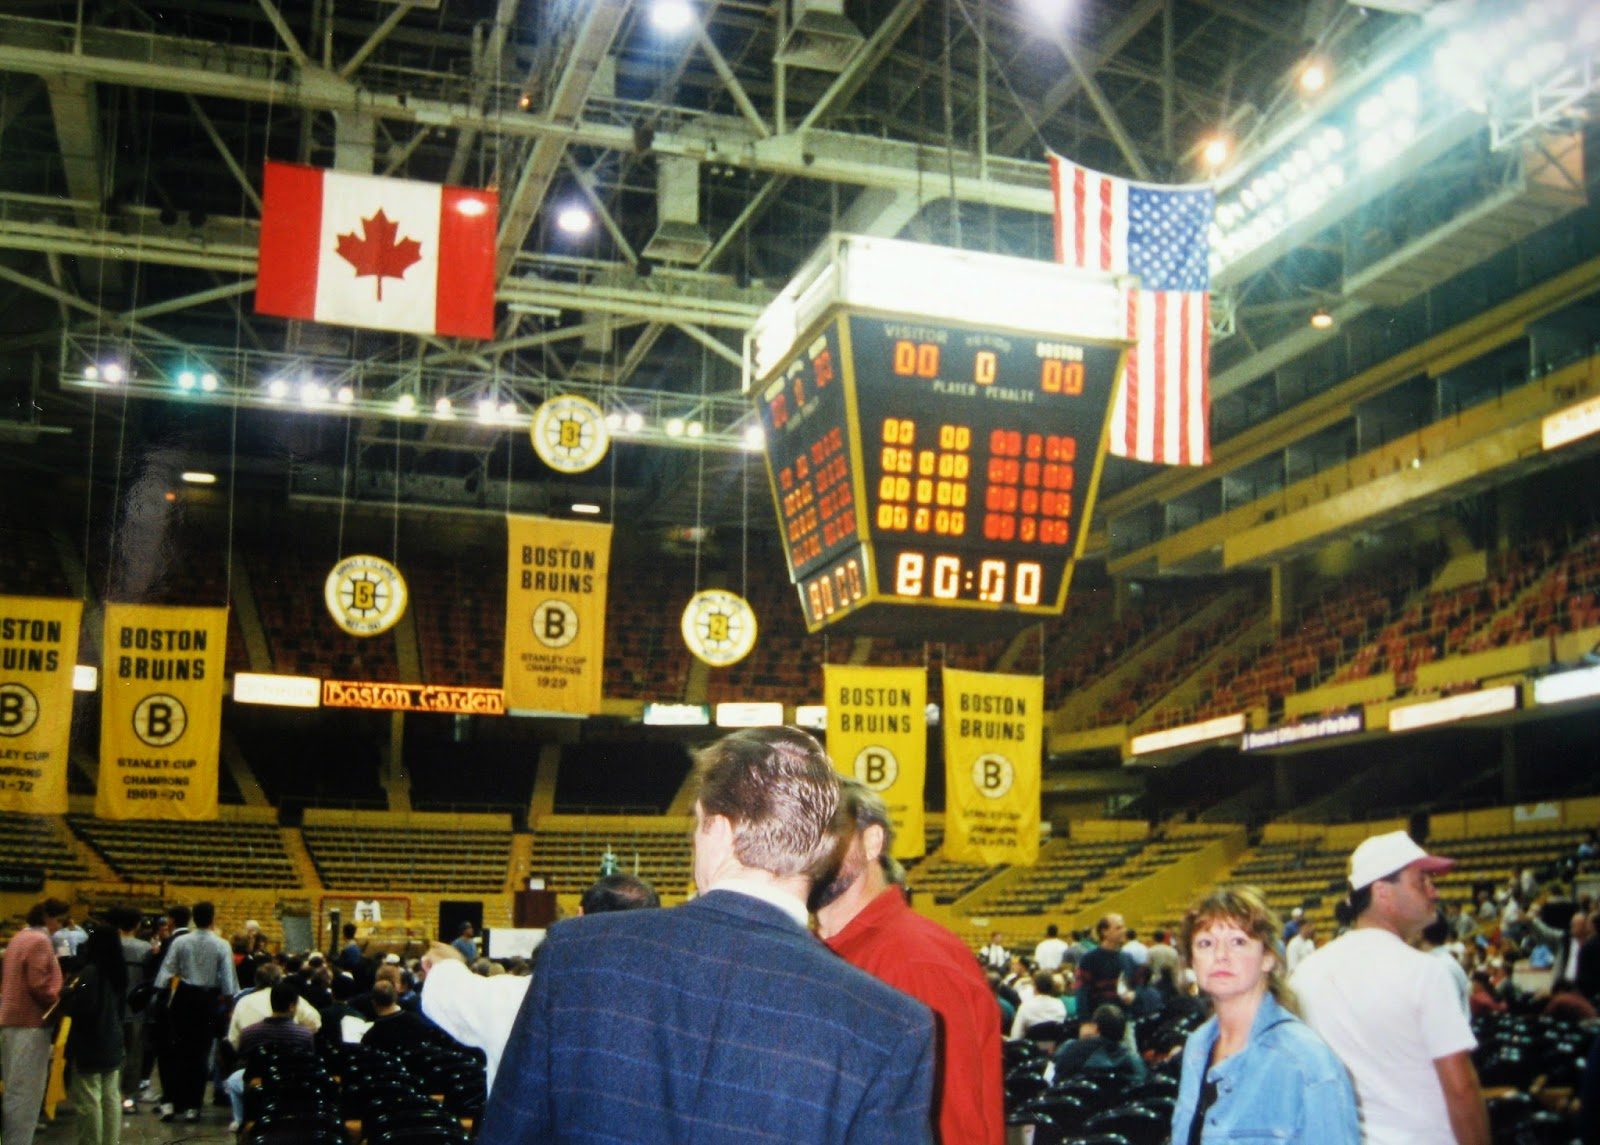 The old Boston Garden on auction day 1996